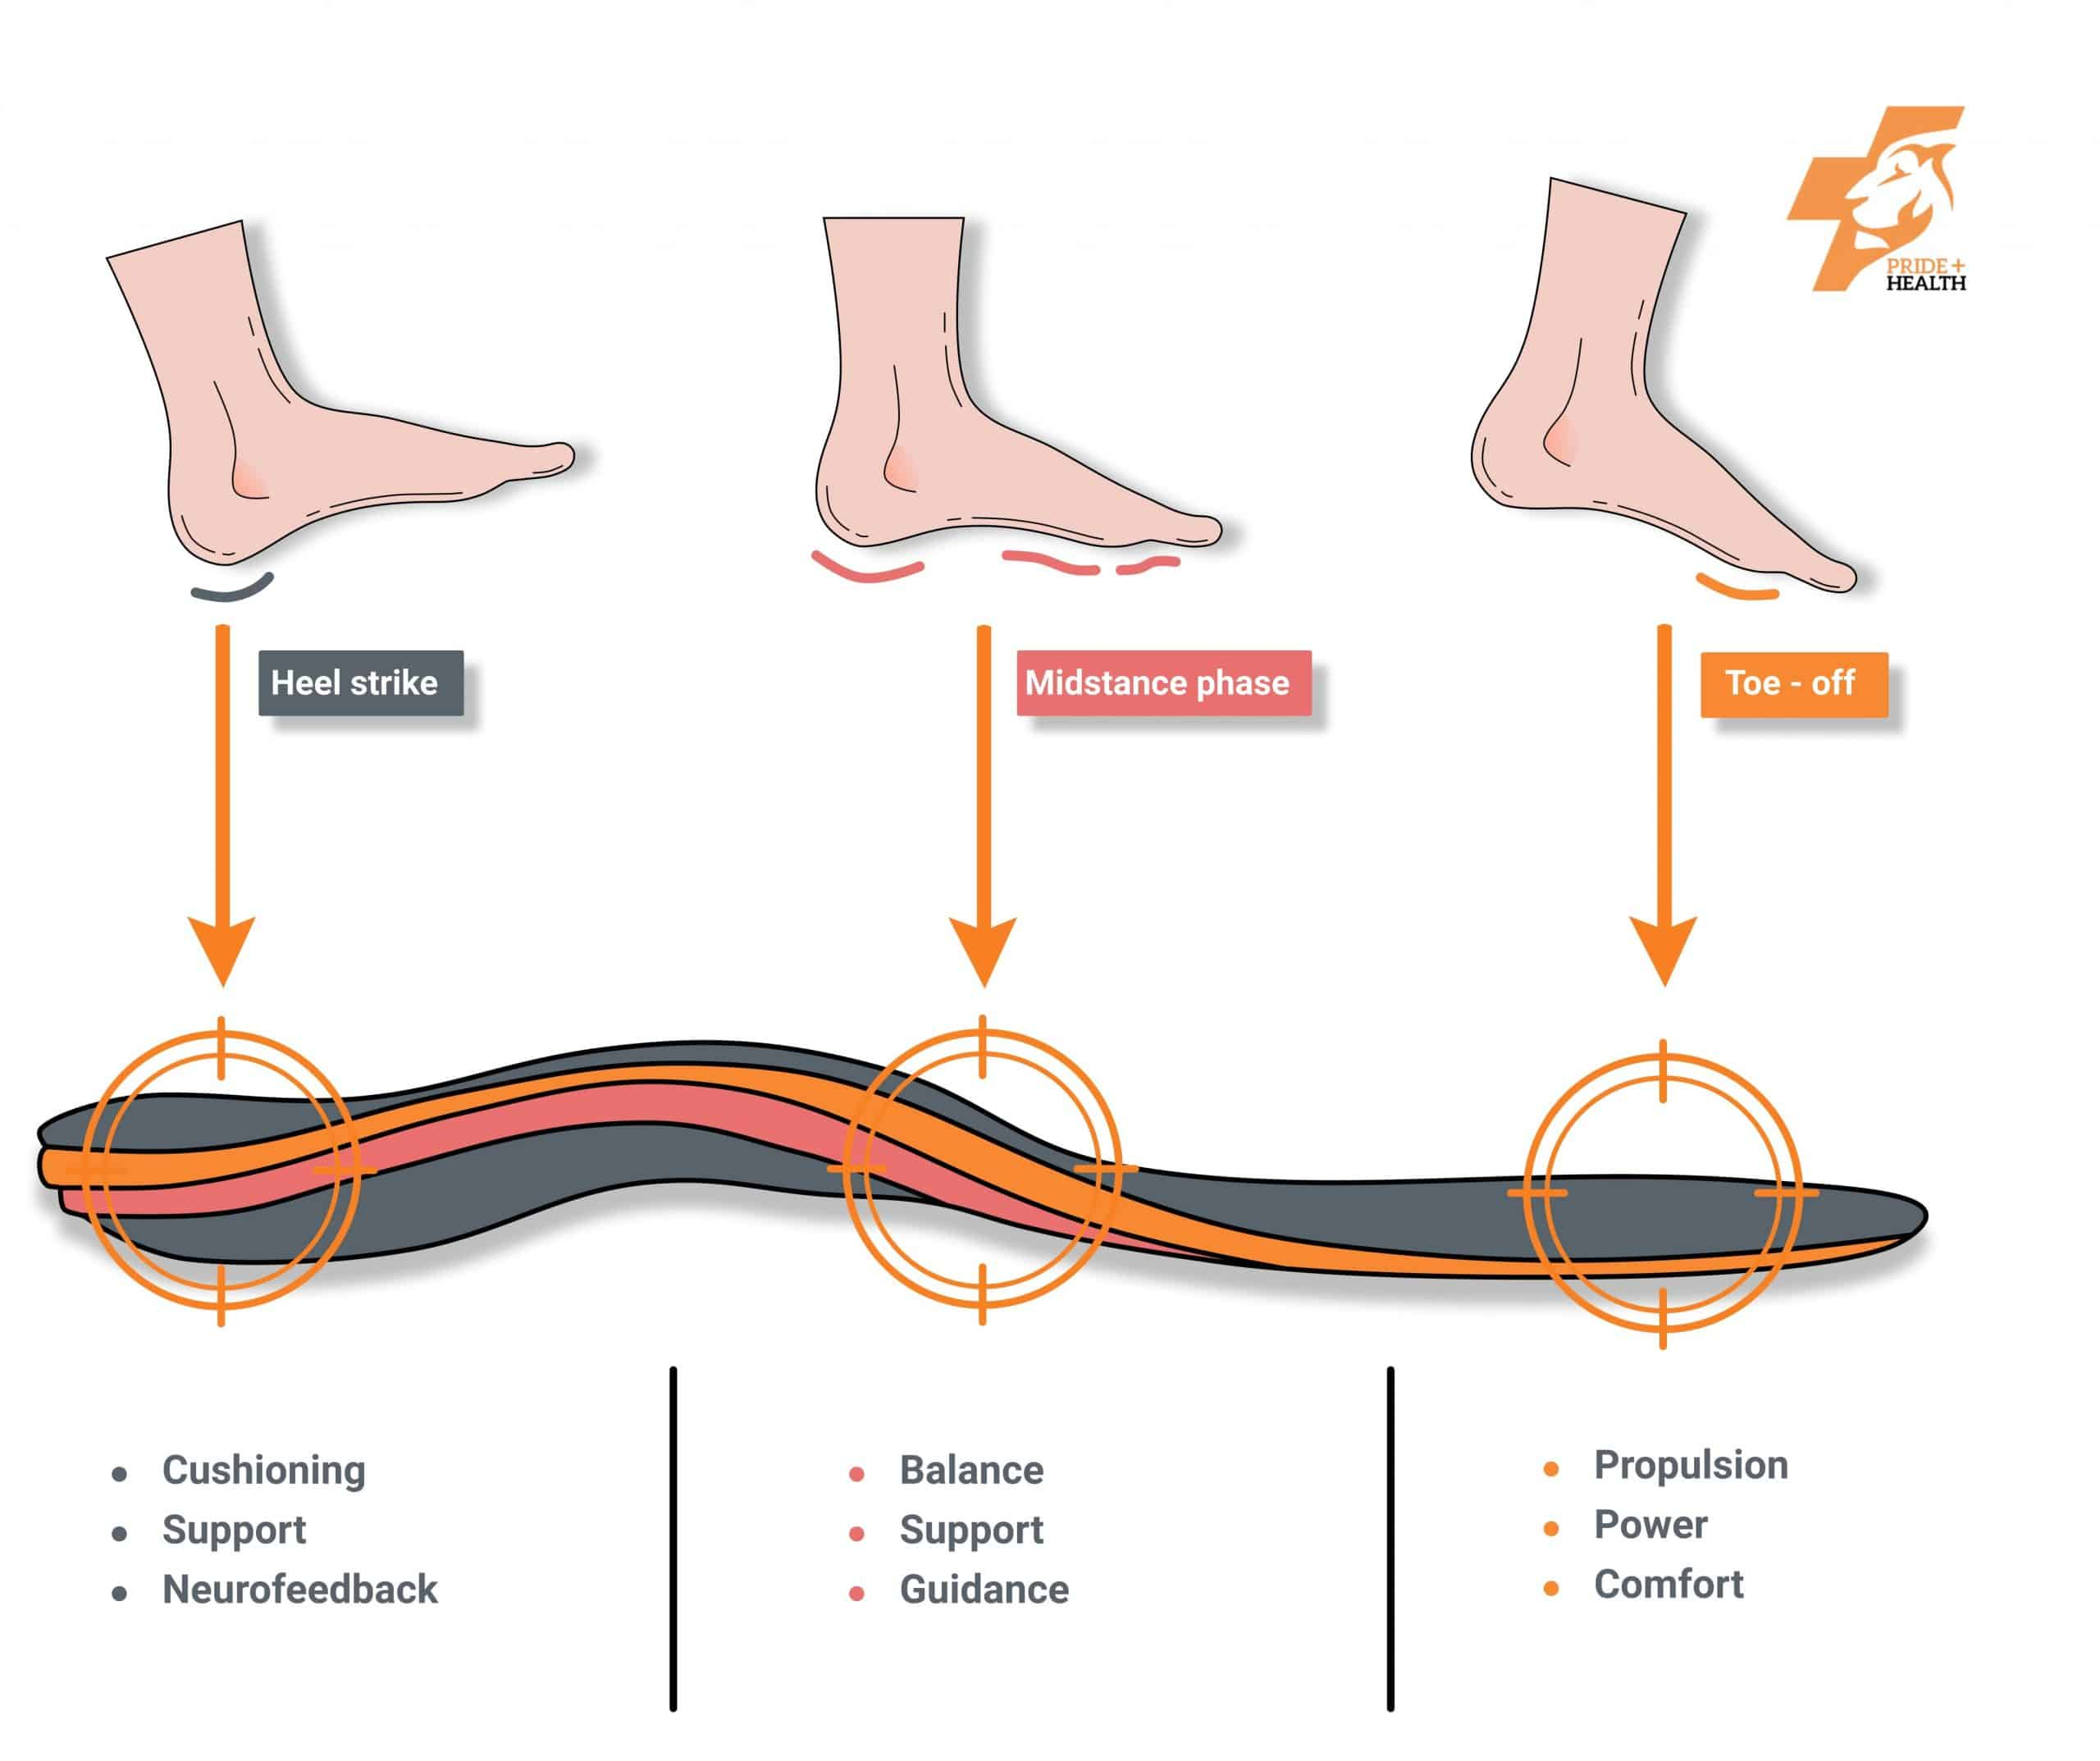 Orthotics work by providing different support at different parts of the gait cycle.